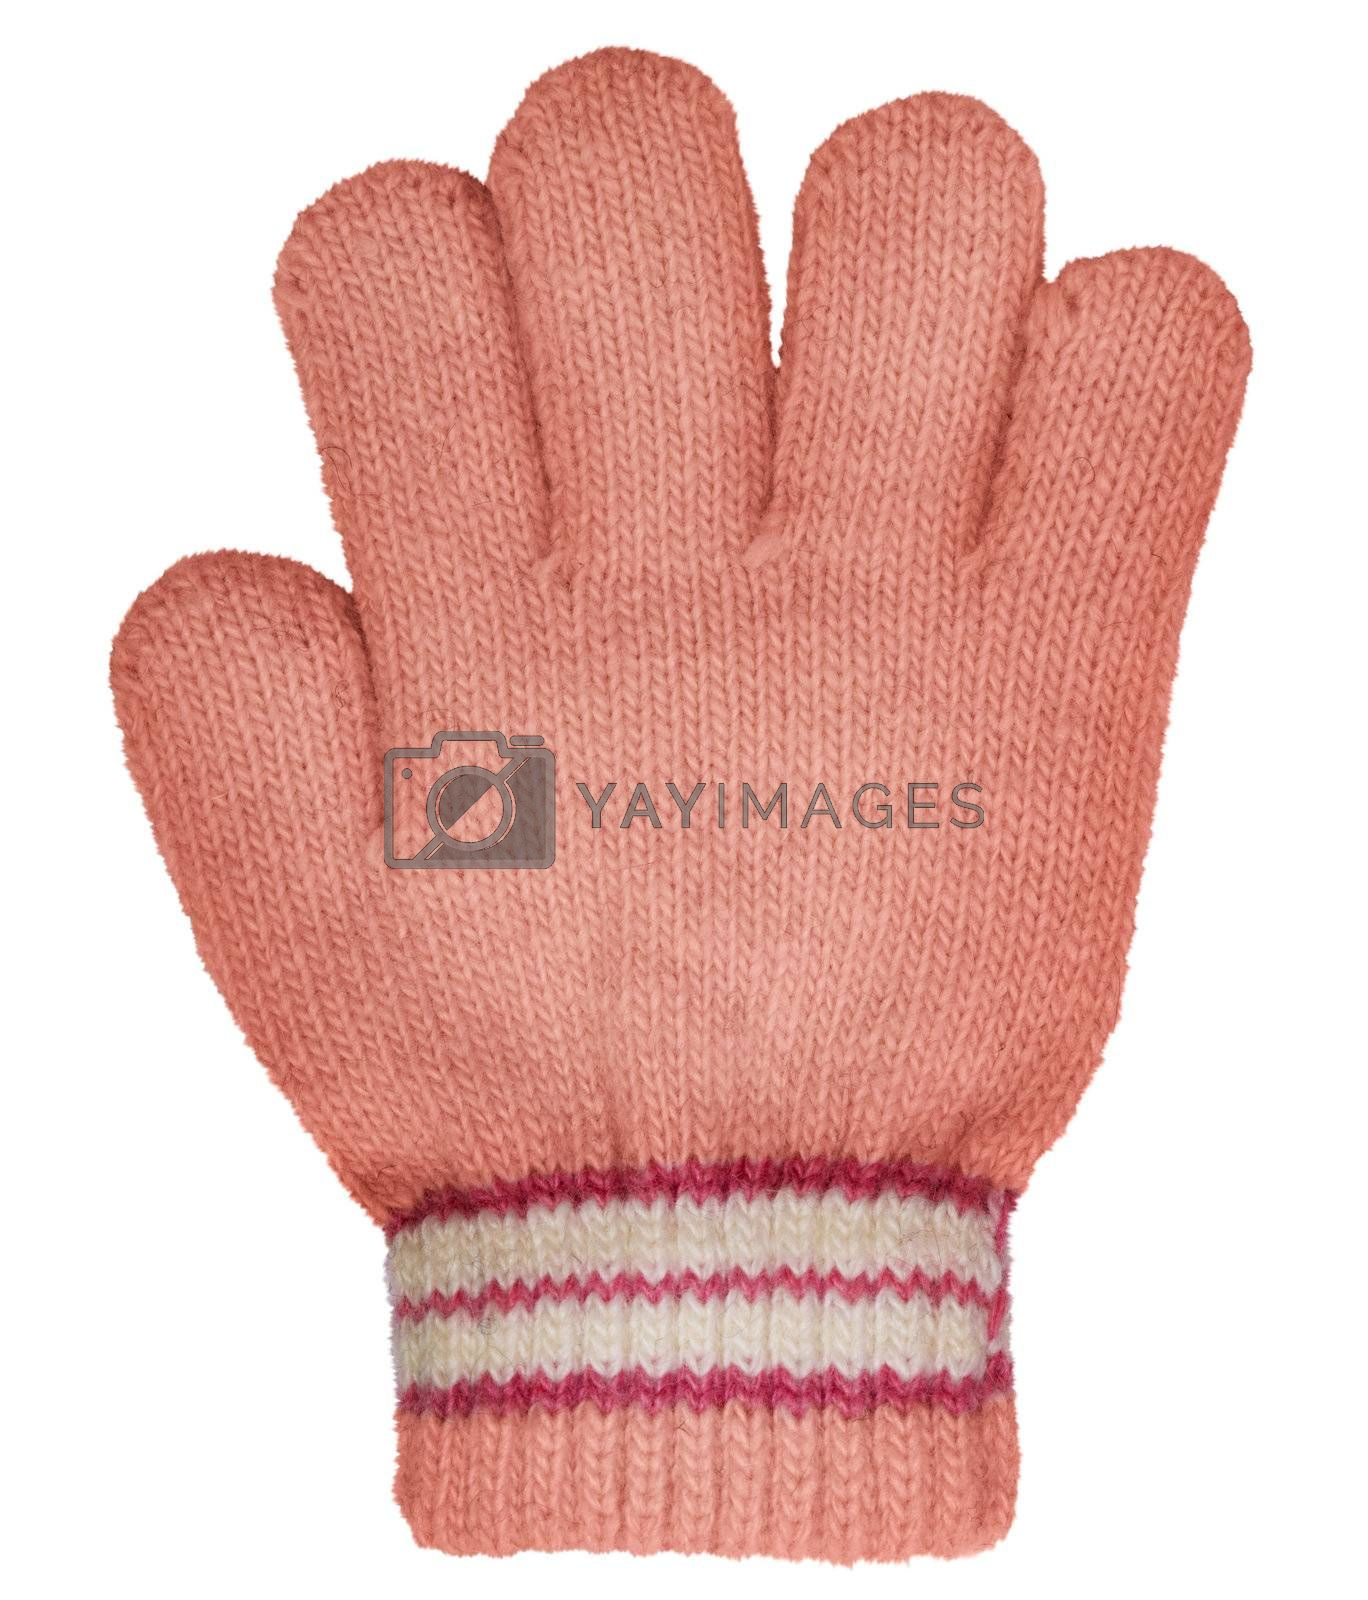 Children's knitted woolen glove isolated on white background